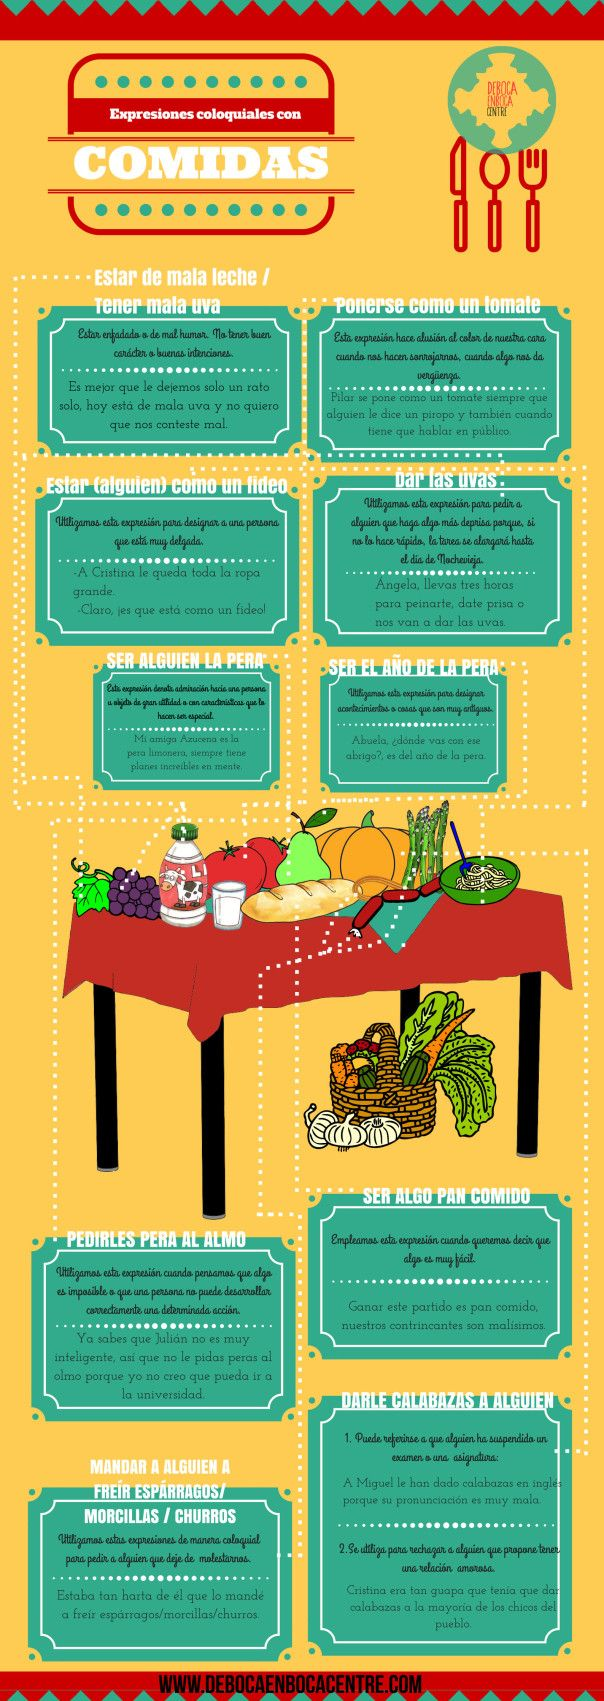 Debocaenbocacentre|Expresiones coloquiales con comidas|This infographic, which explains common colloqualisms in Spanish that are related to food, could be useful as an example/point of reference for helping Spanish-speaking newcomer or low English proficiency ELLs understand the concepts of idioms and colloqualisms in English.